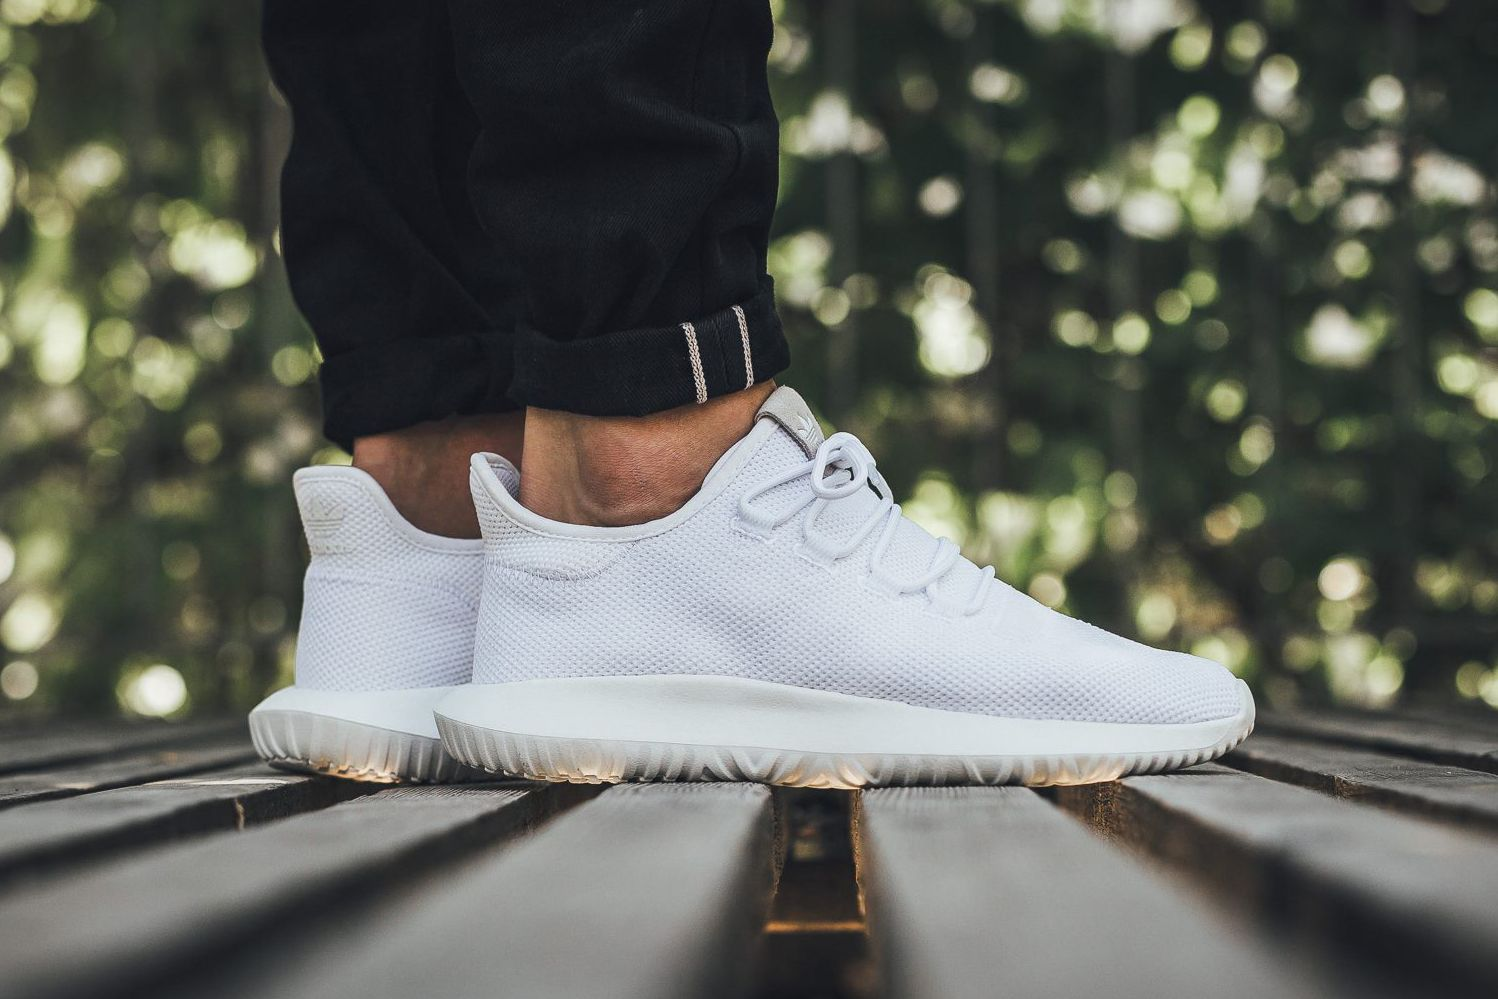 639e30a9341 The adidas Originals Tubular Shadow Gets Reworked in All-White in ...